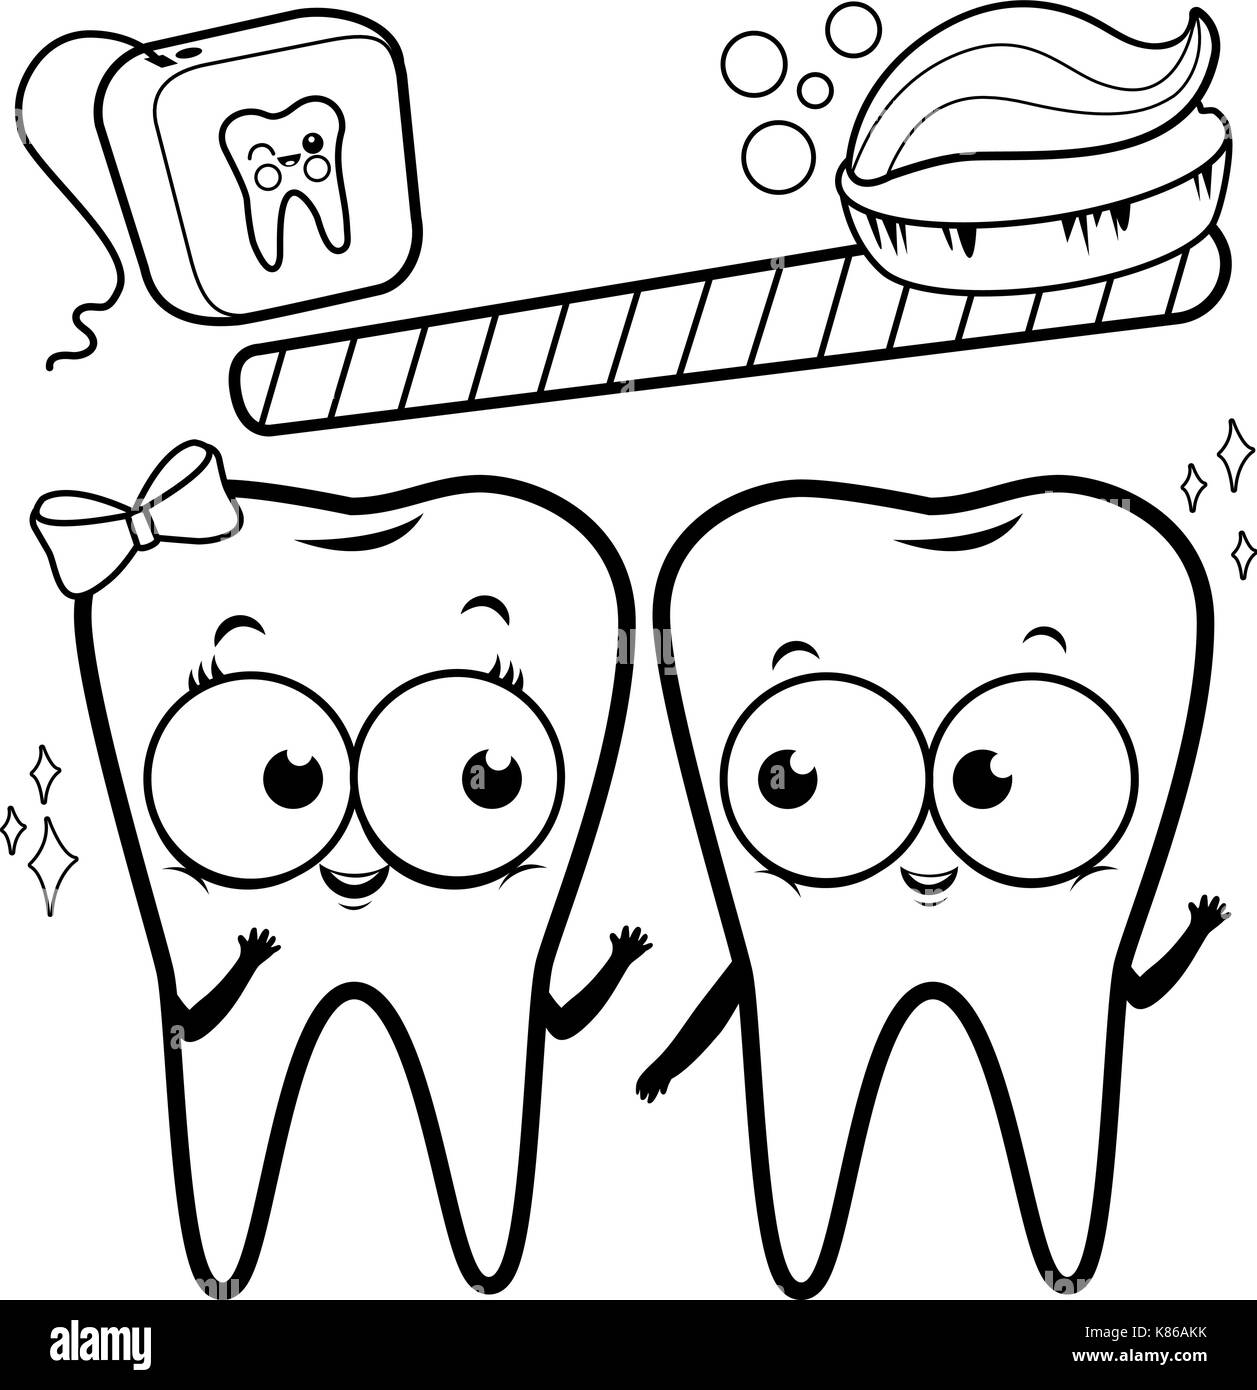 Cartoon teeth with toothbrush and dental floss. Black and white ...